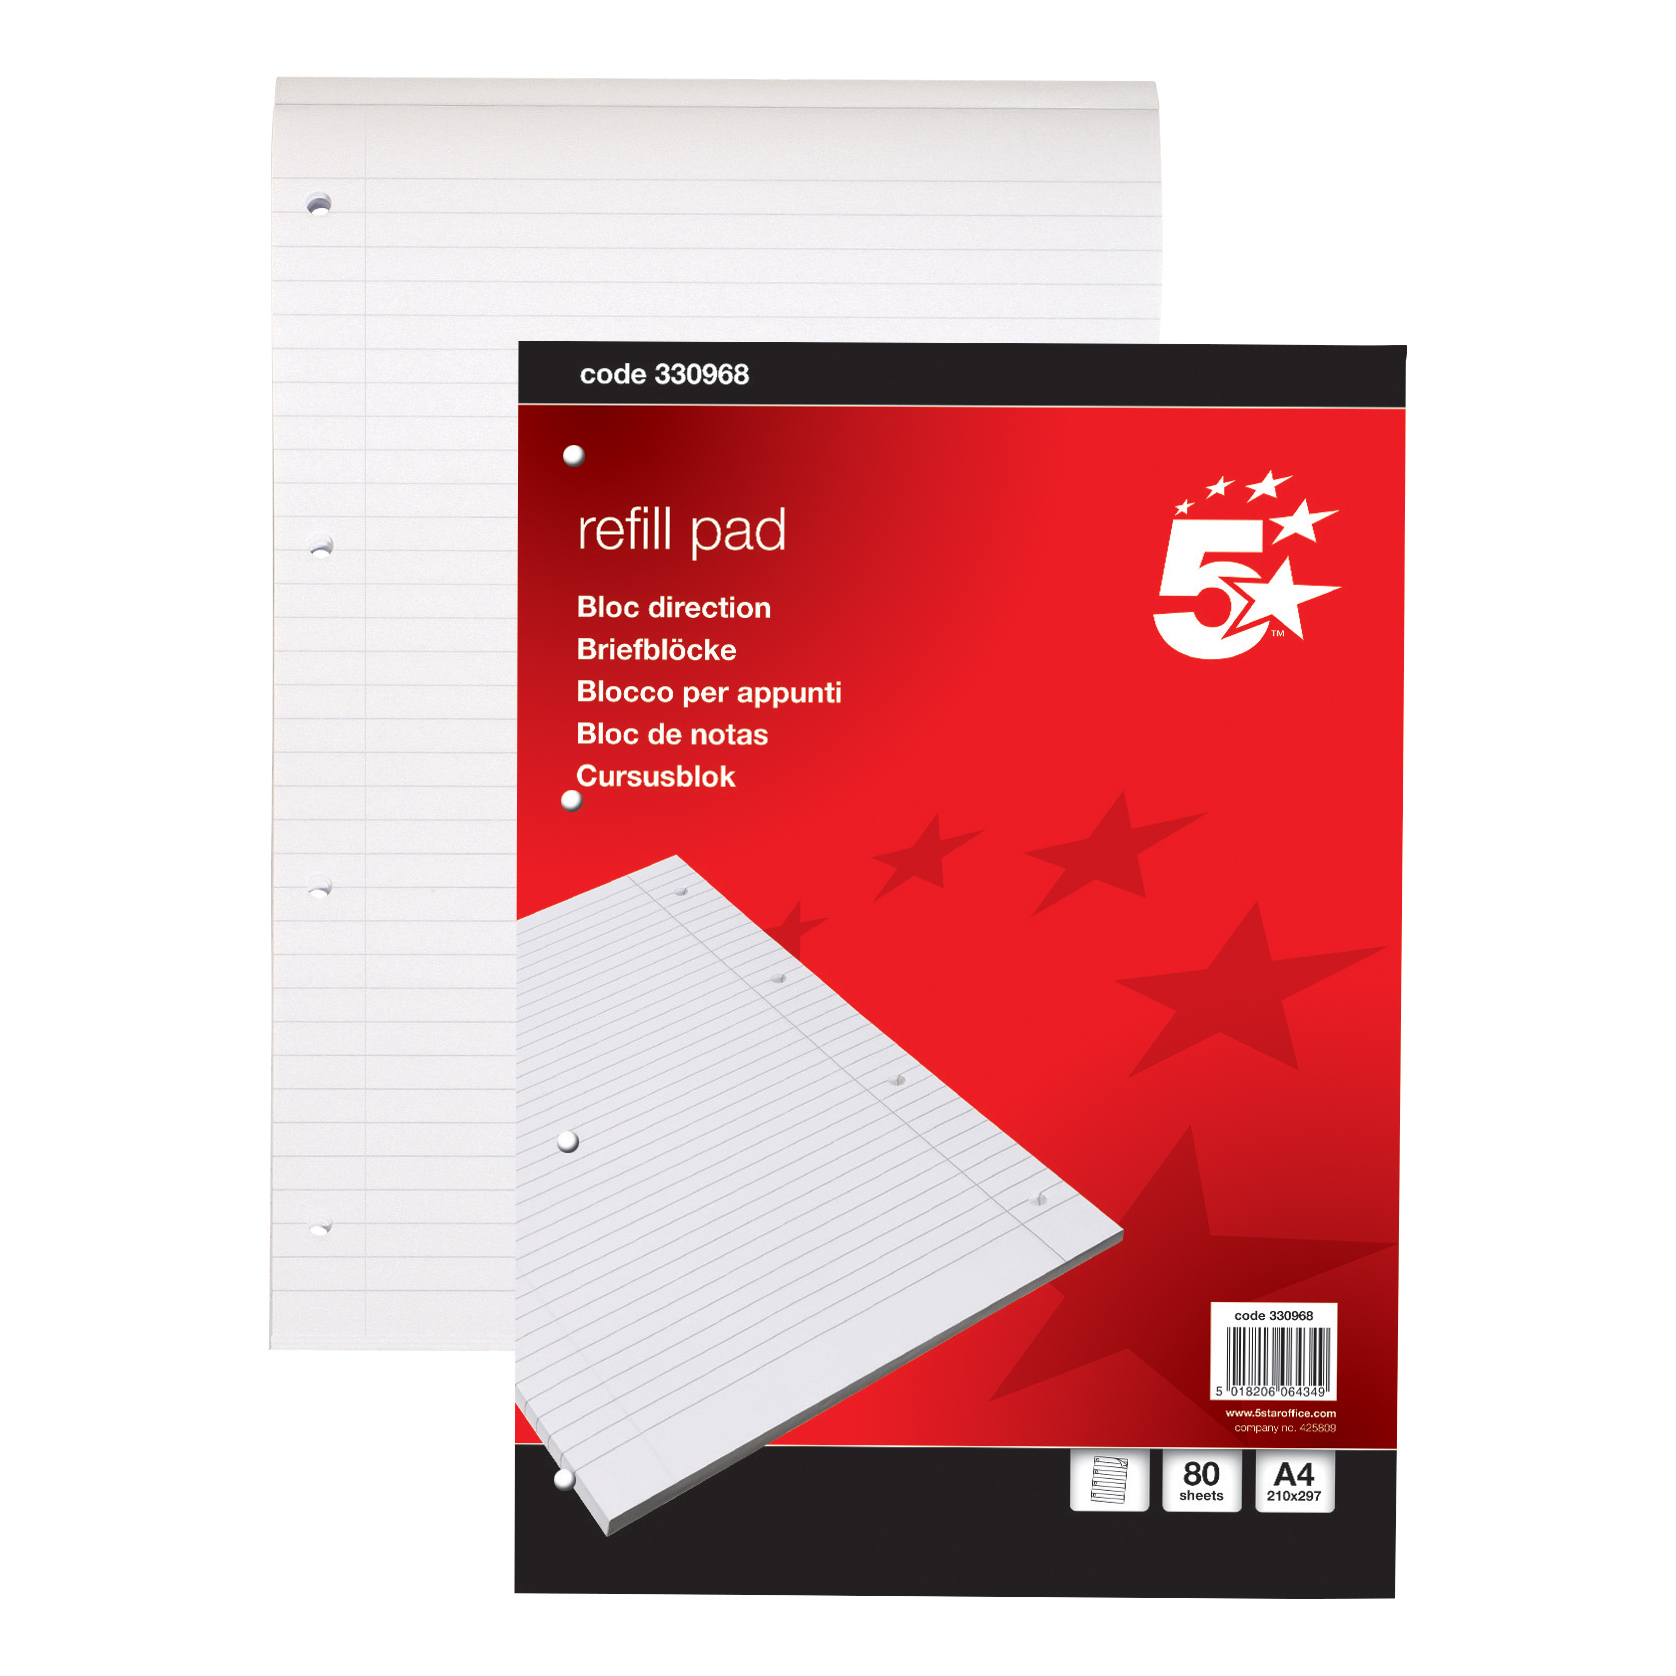 Refill Pads 5 Star Refill Pad Fnt Ruled & Margin 80 Sheets